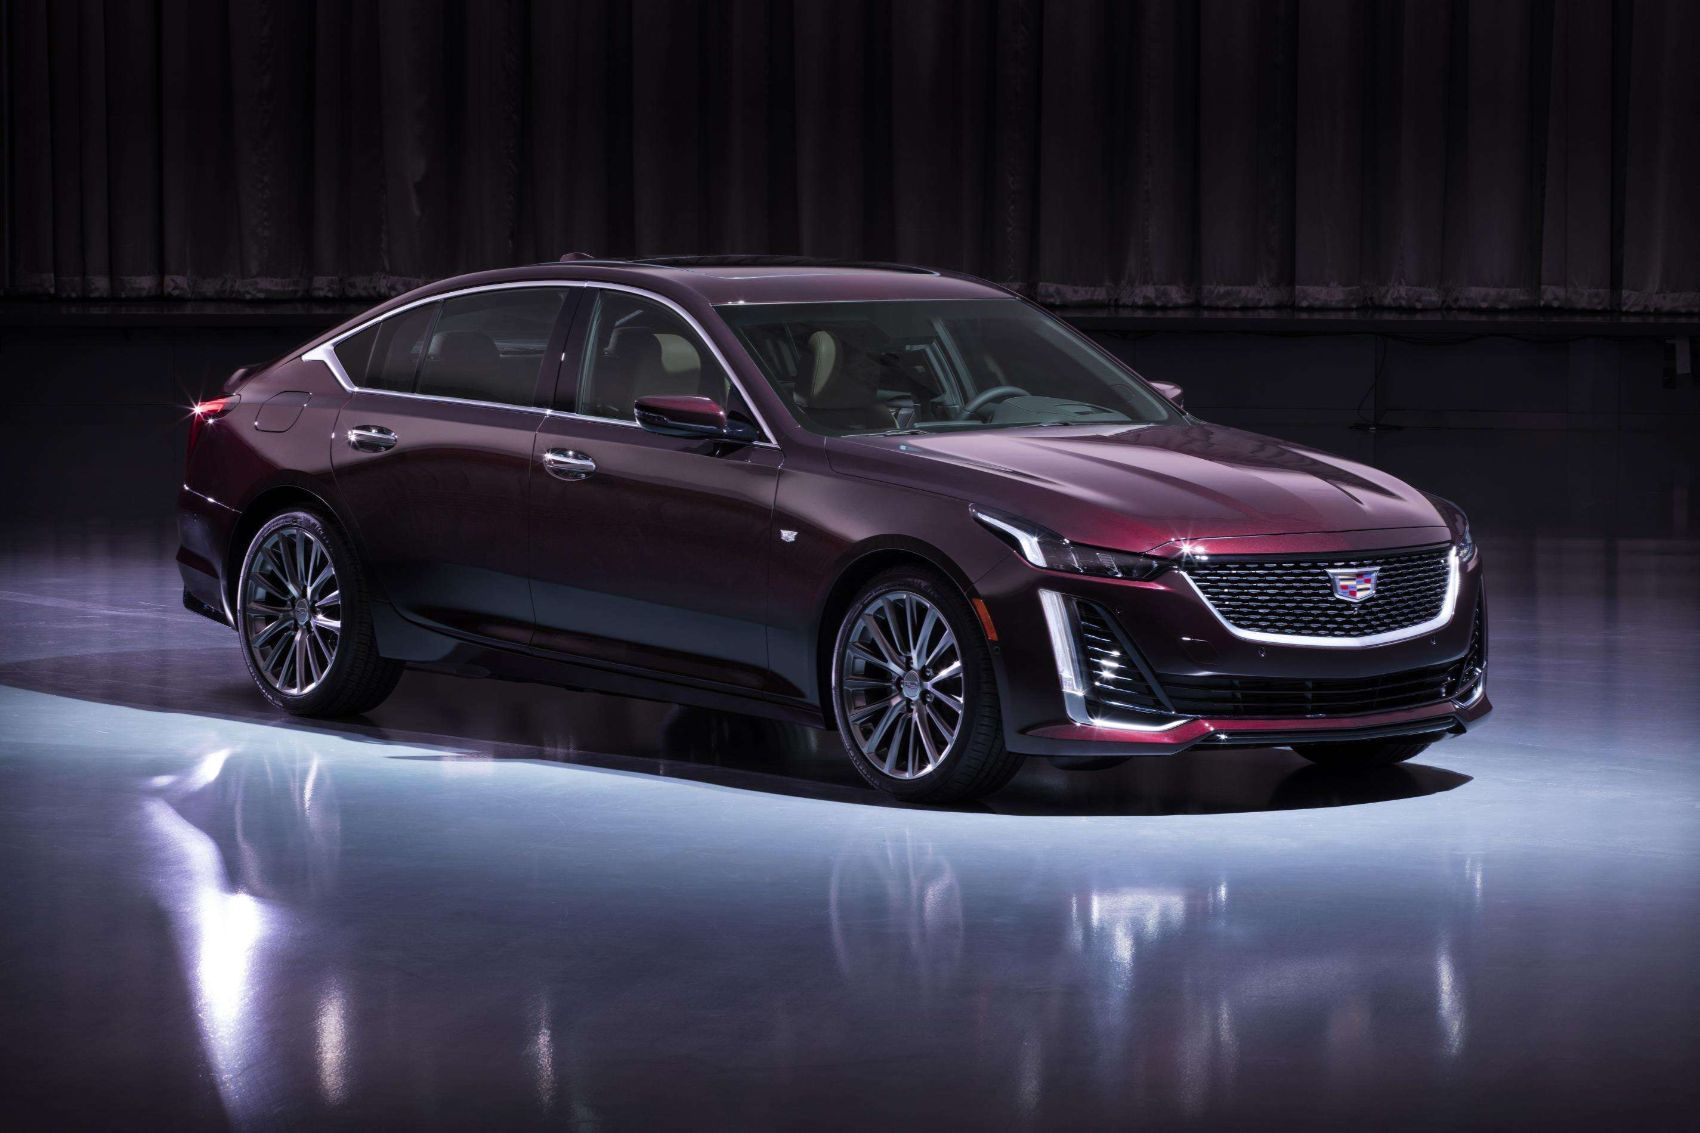 2020 Cadillac CT5: Reviving the American Sport-Luxury Sedan 15